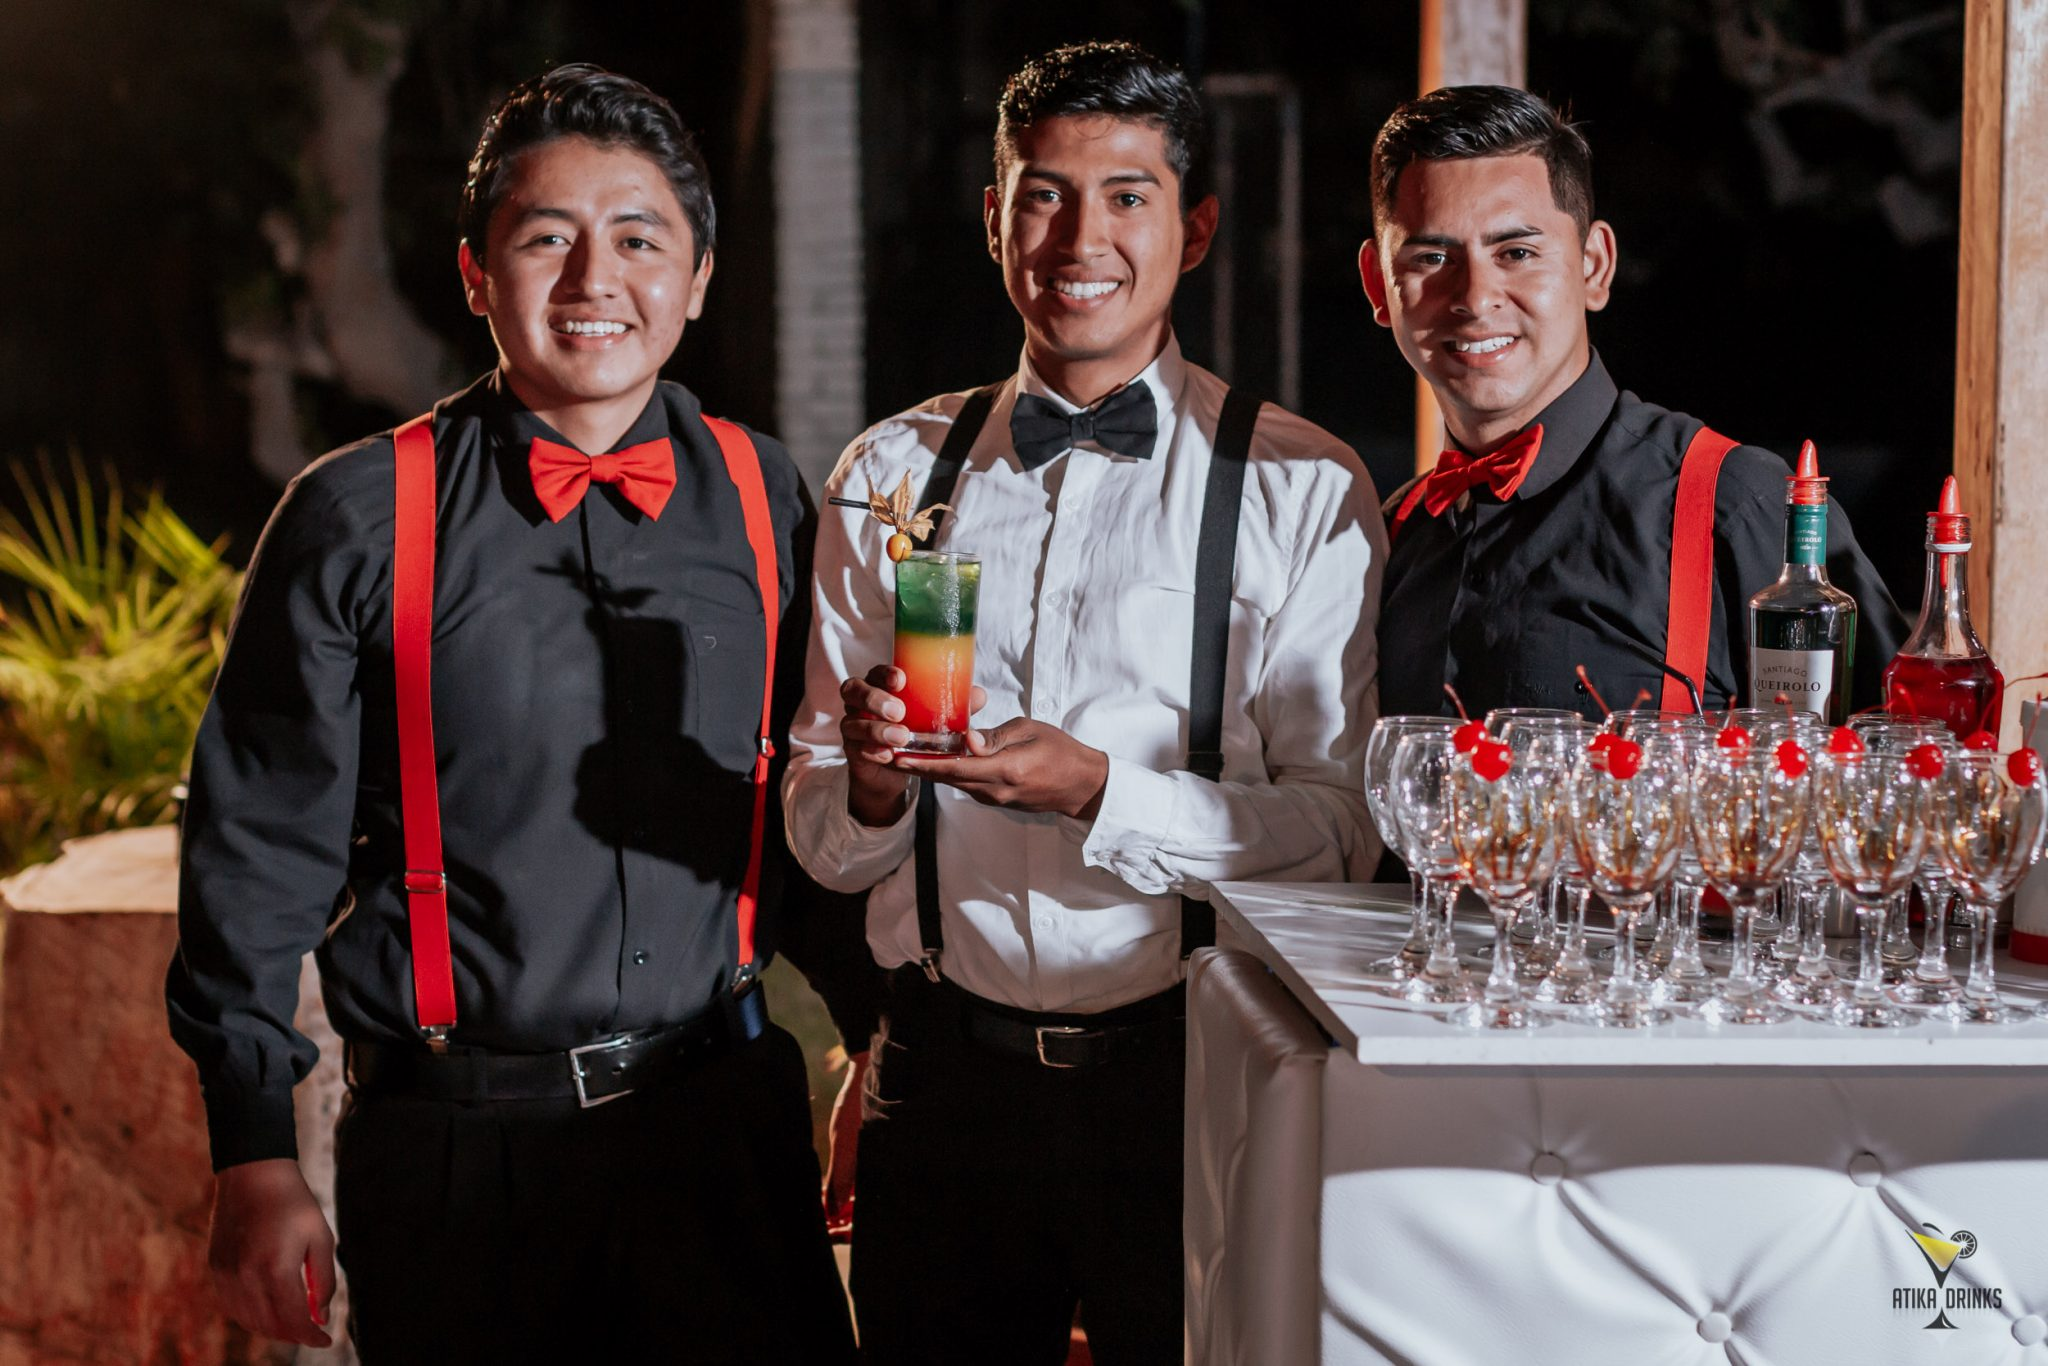 Atika Drinks: Expertos en catering de bar